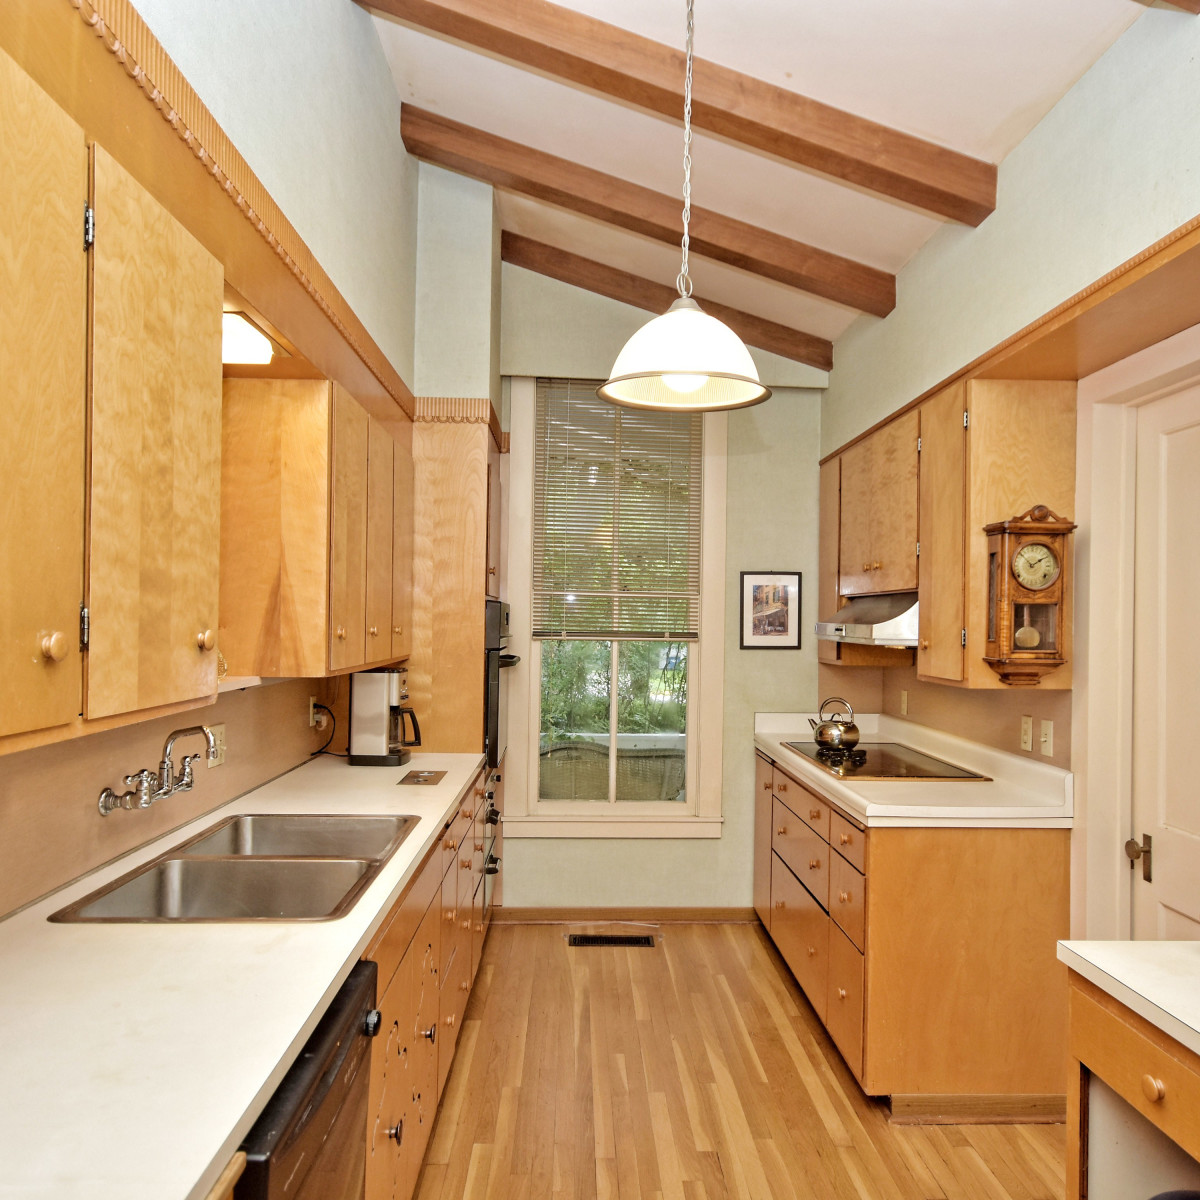 581 Coll New Braunfels house for sale kitchen